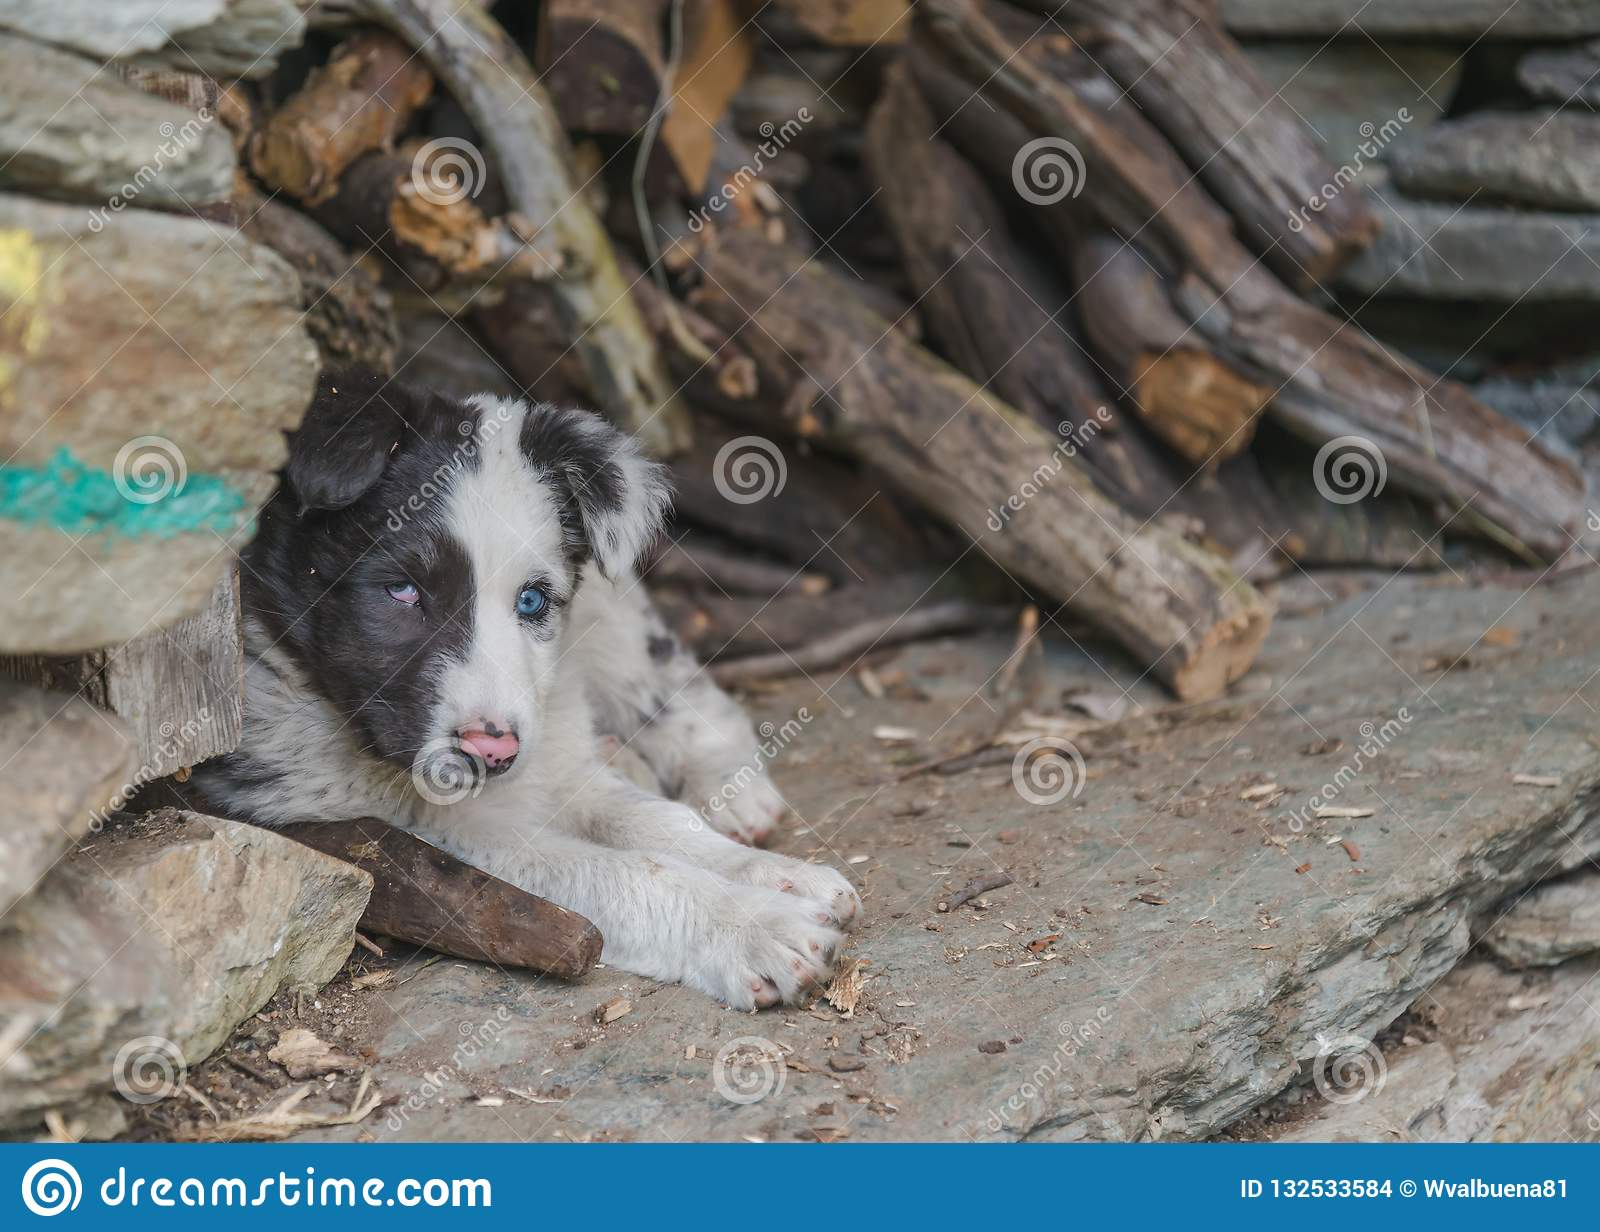 Cute and small puppy dog laid down